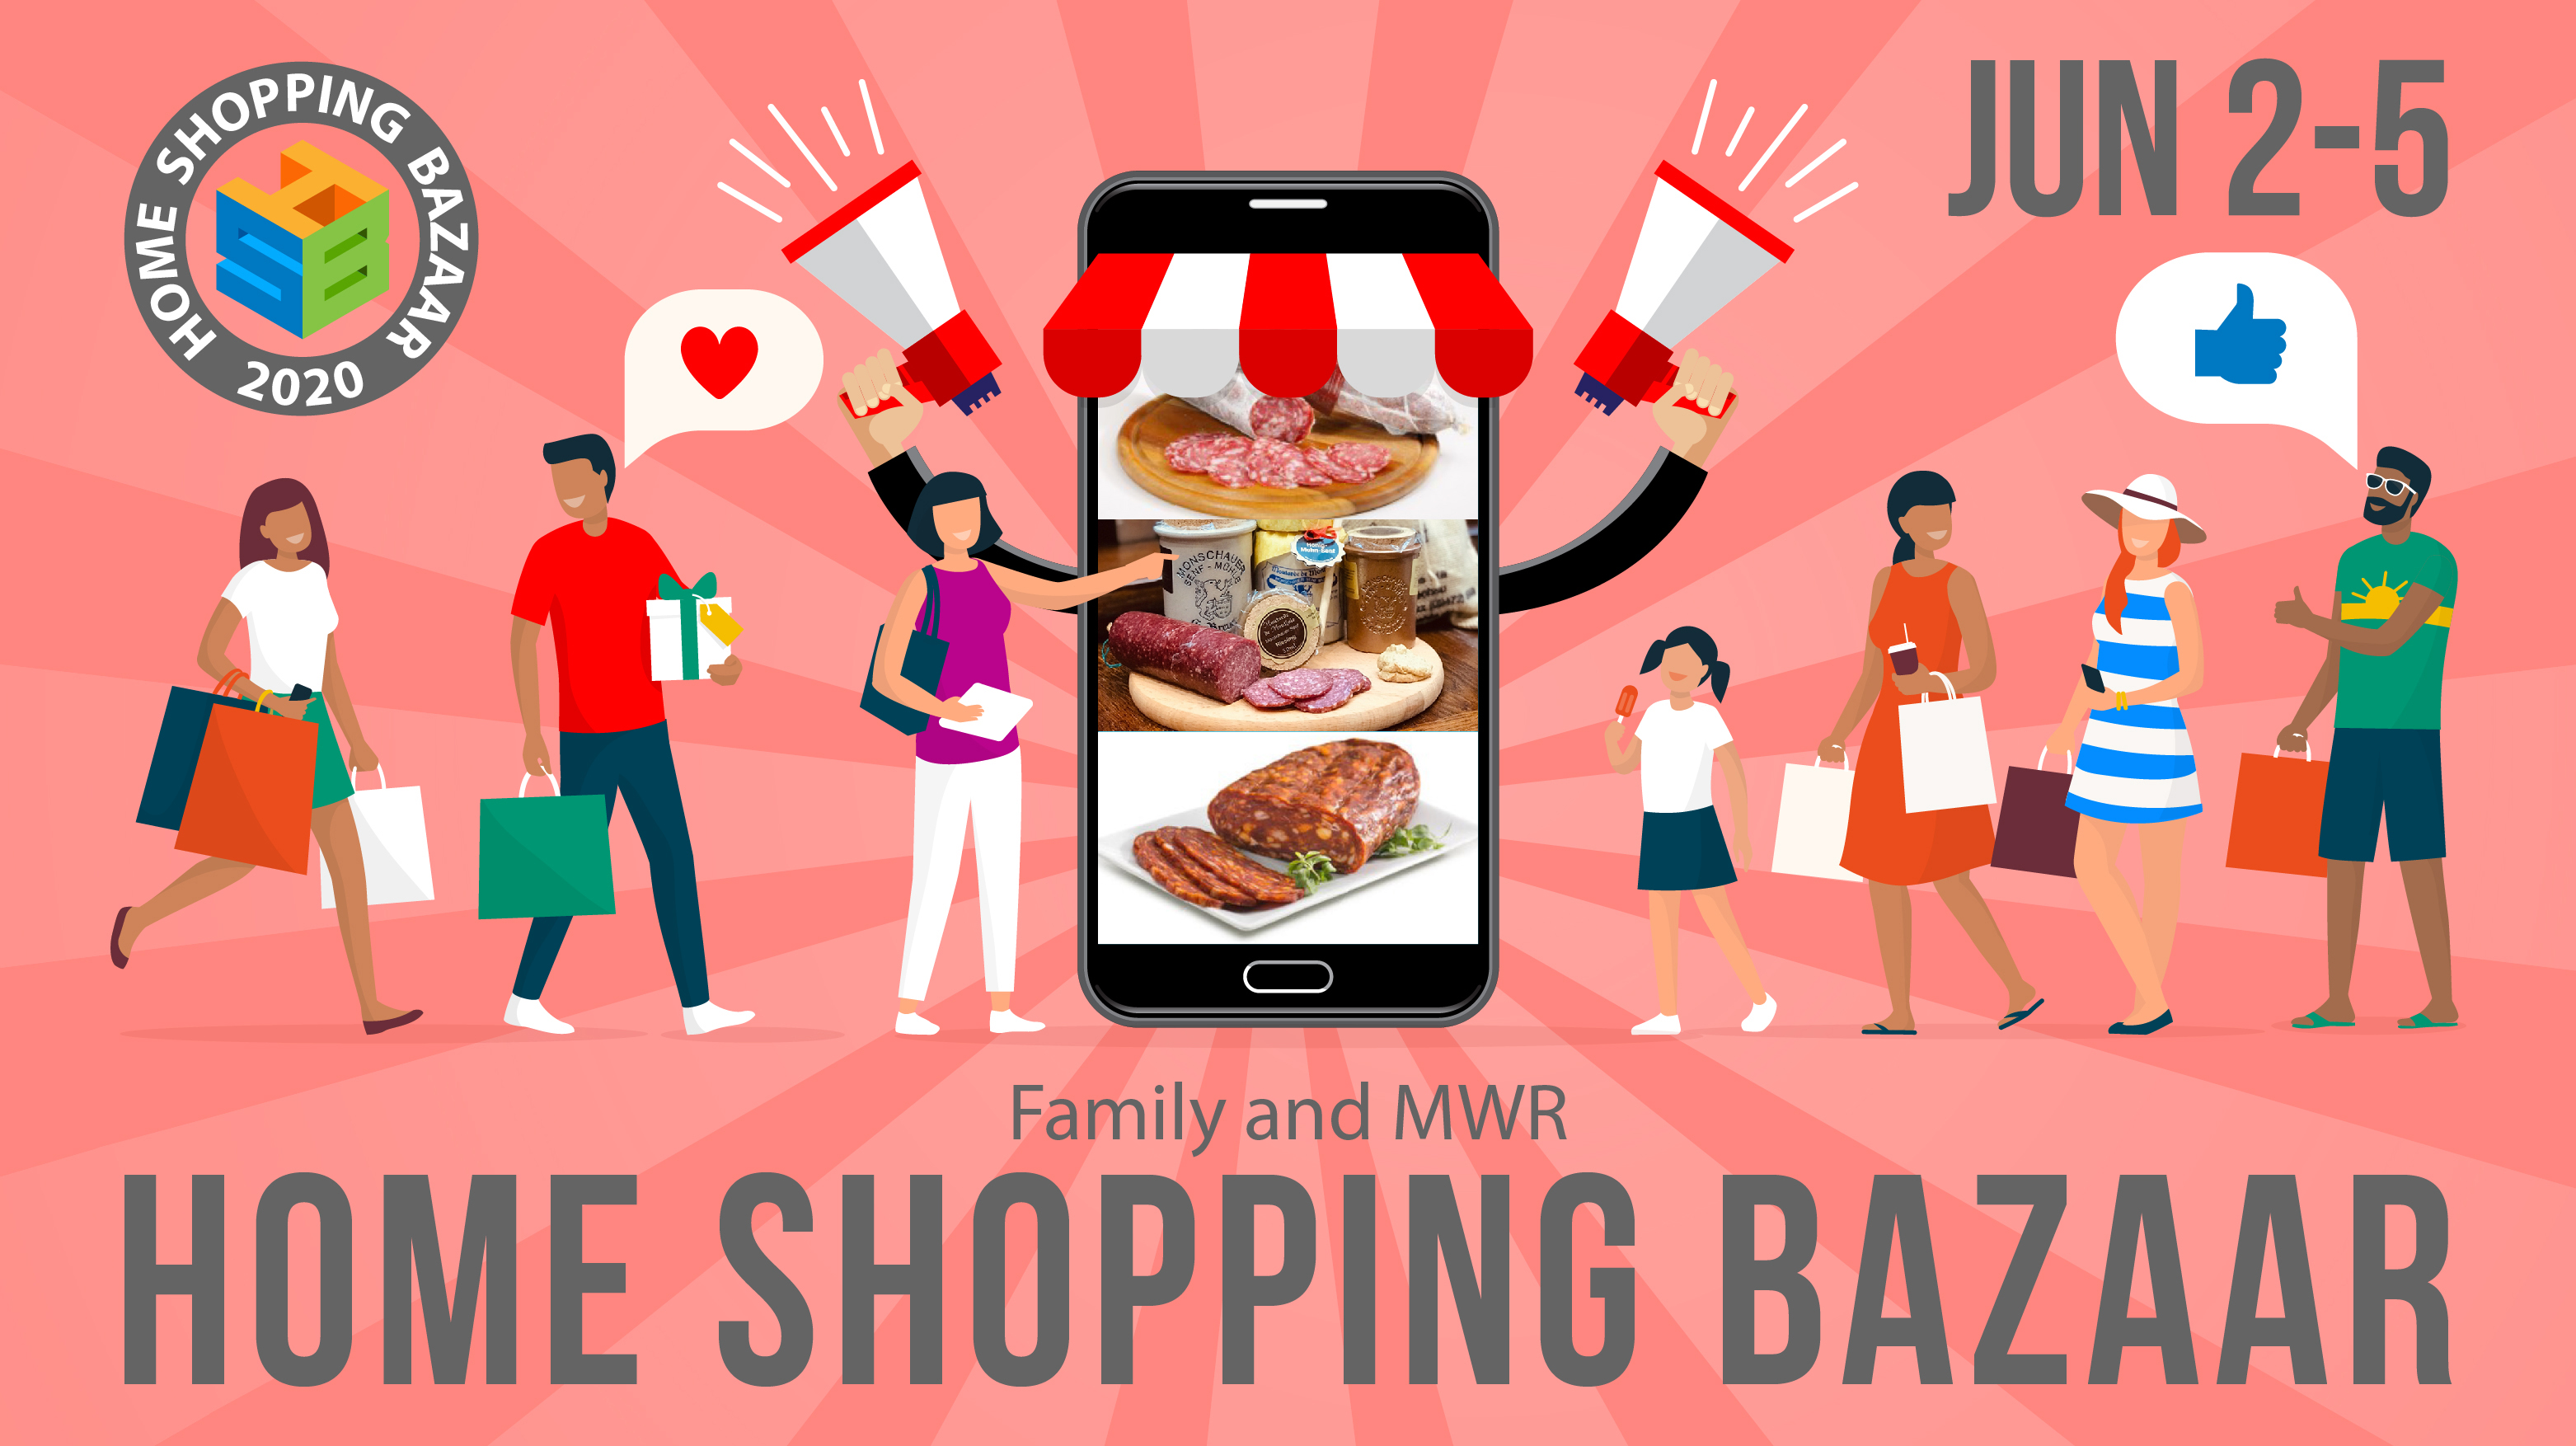 Home Shopping Bazaar